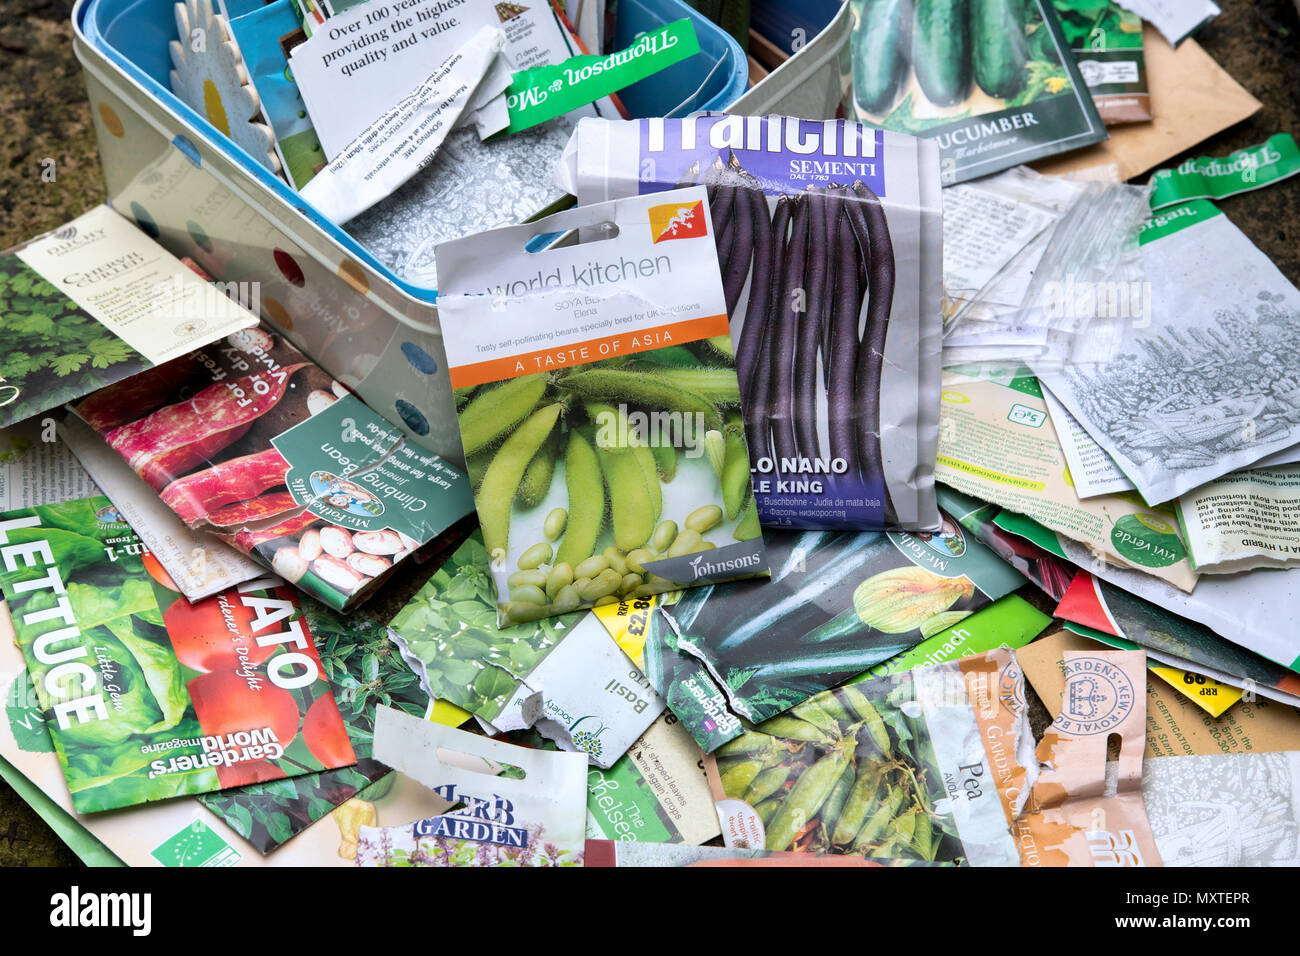 Vegetable plant seed packets - Stock Image